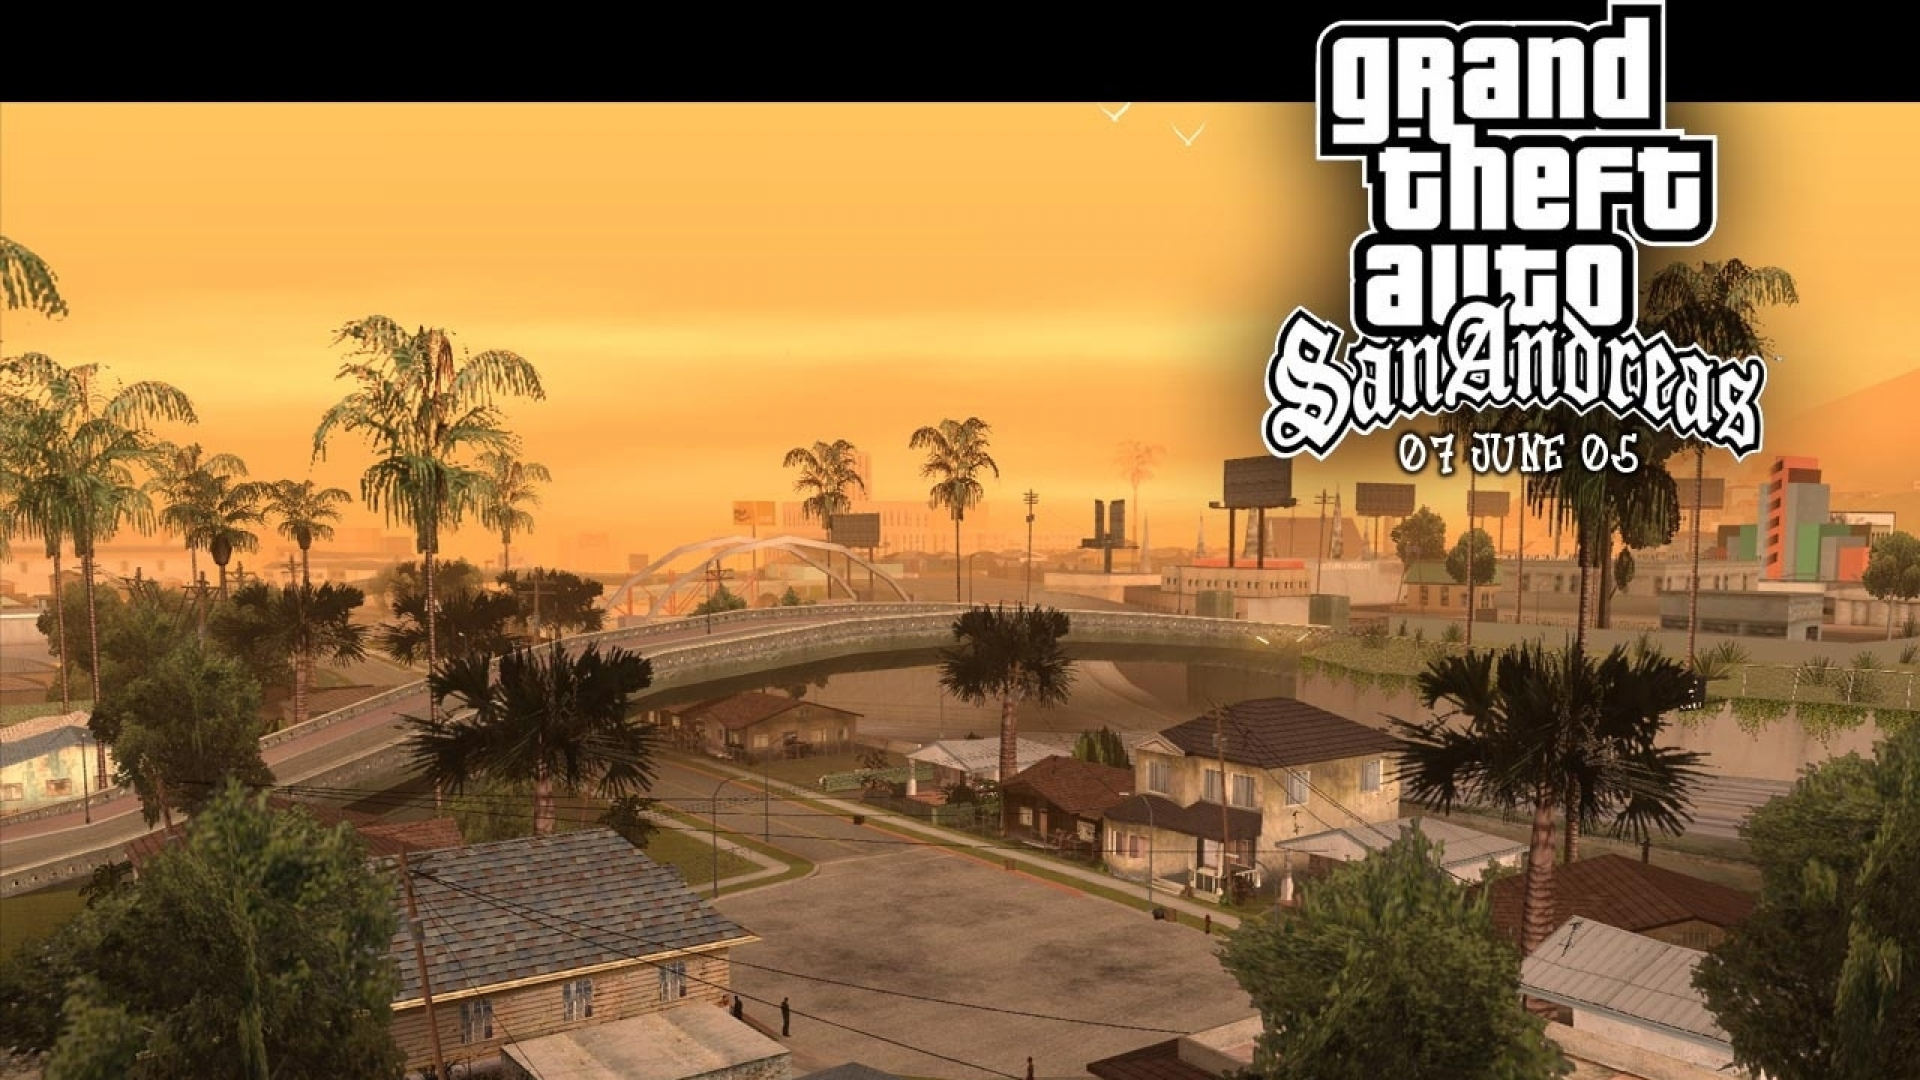 2560x1600px grand theft auto: san andreas hd wallpapers